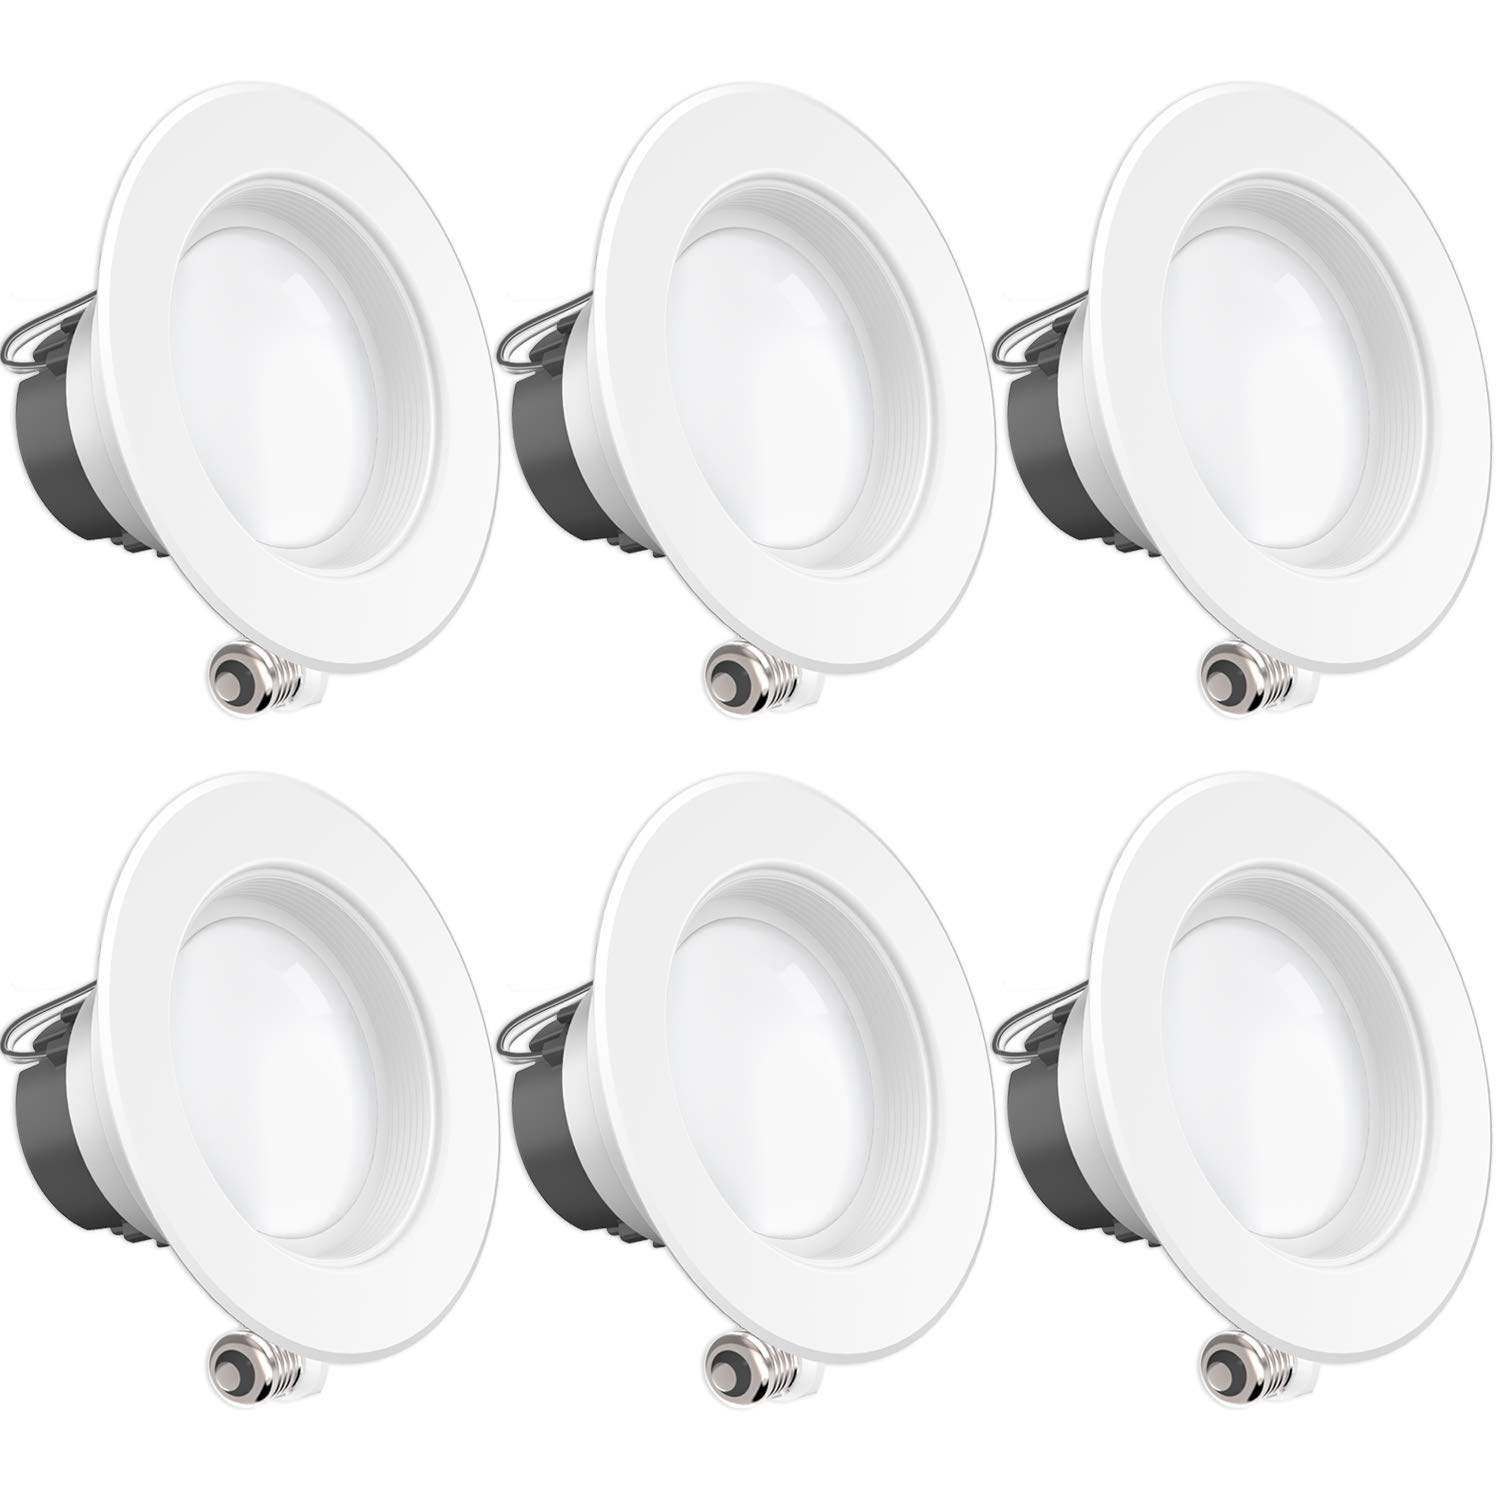 Sunco Lighting 6 Pack 4 Inch LED Recessed Downlight, Baffle Trim, Dimmable, 11W=40W, 2700K Soft White, 660 LM, Damp Rated, Simple Retrofit Installation - UL + Energy Star